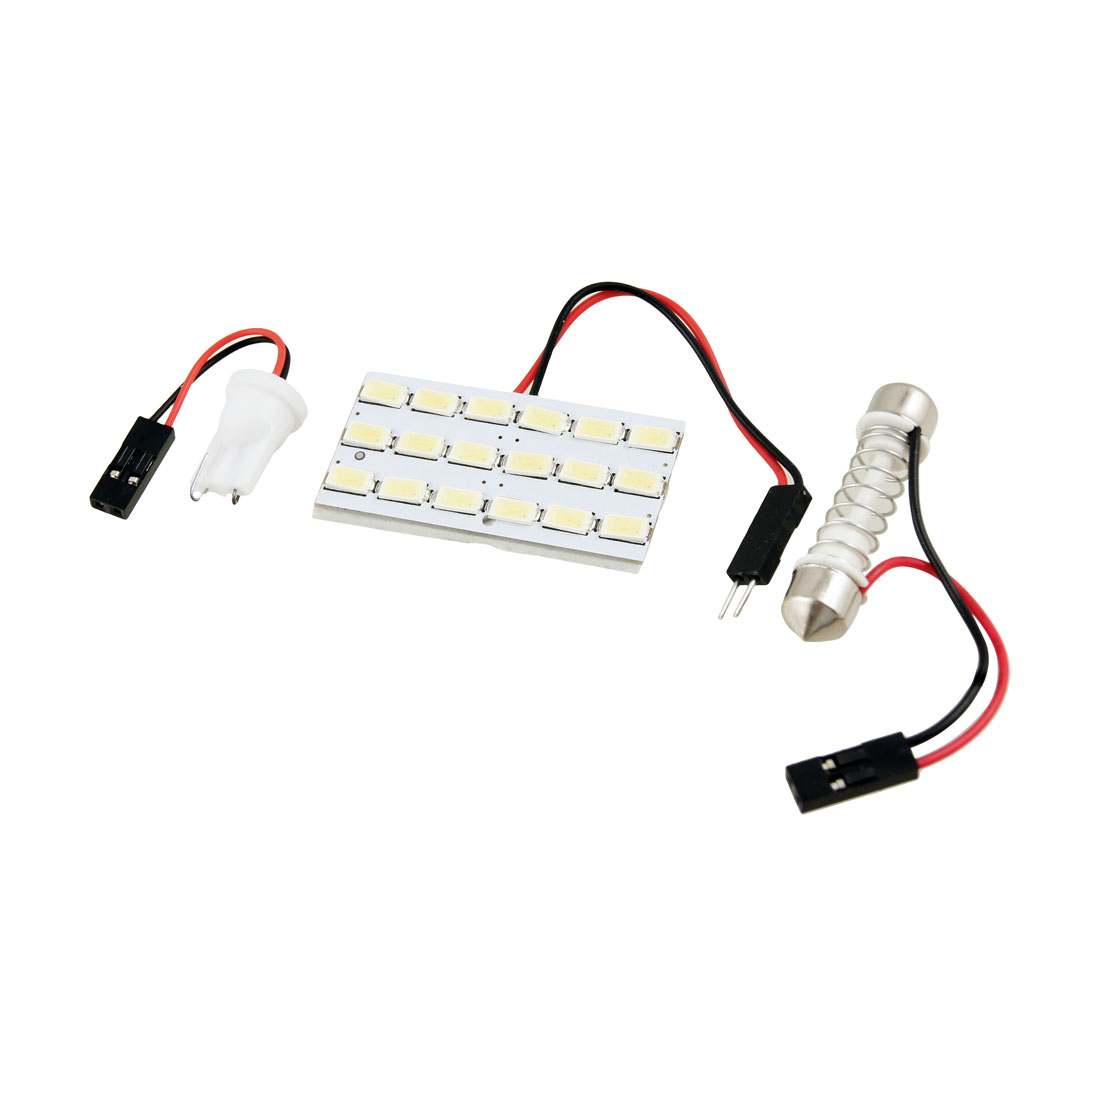 DC 12V White 5630 SMD 24 LED T10 Festoon Car Roof Dome Light Lamp Bulb